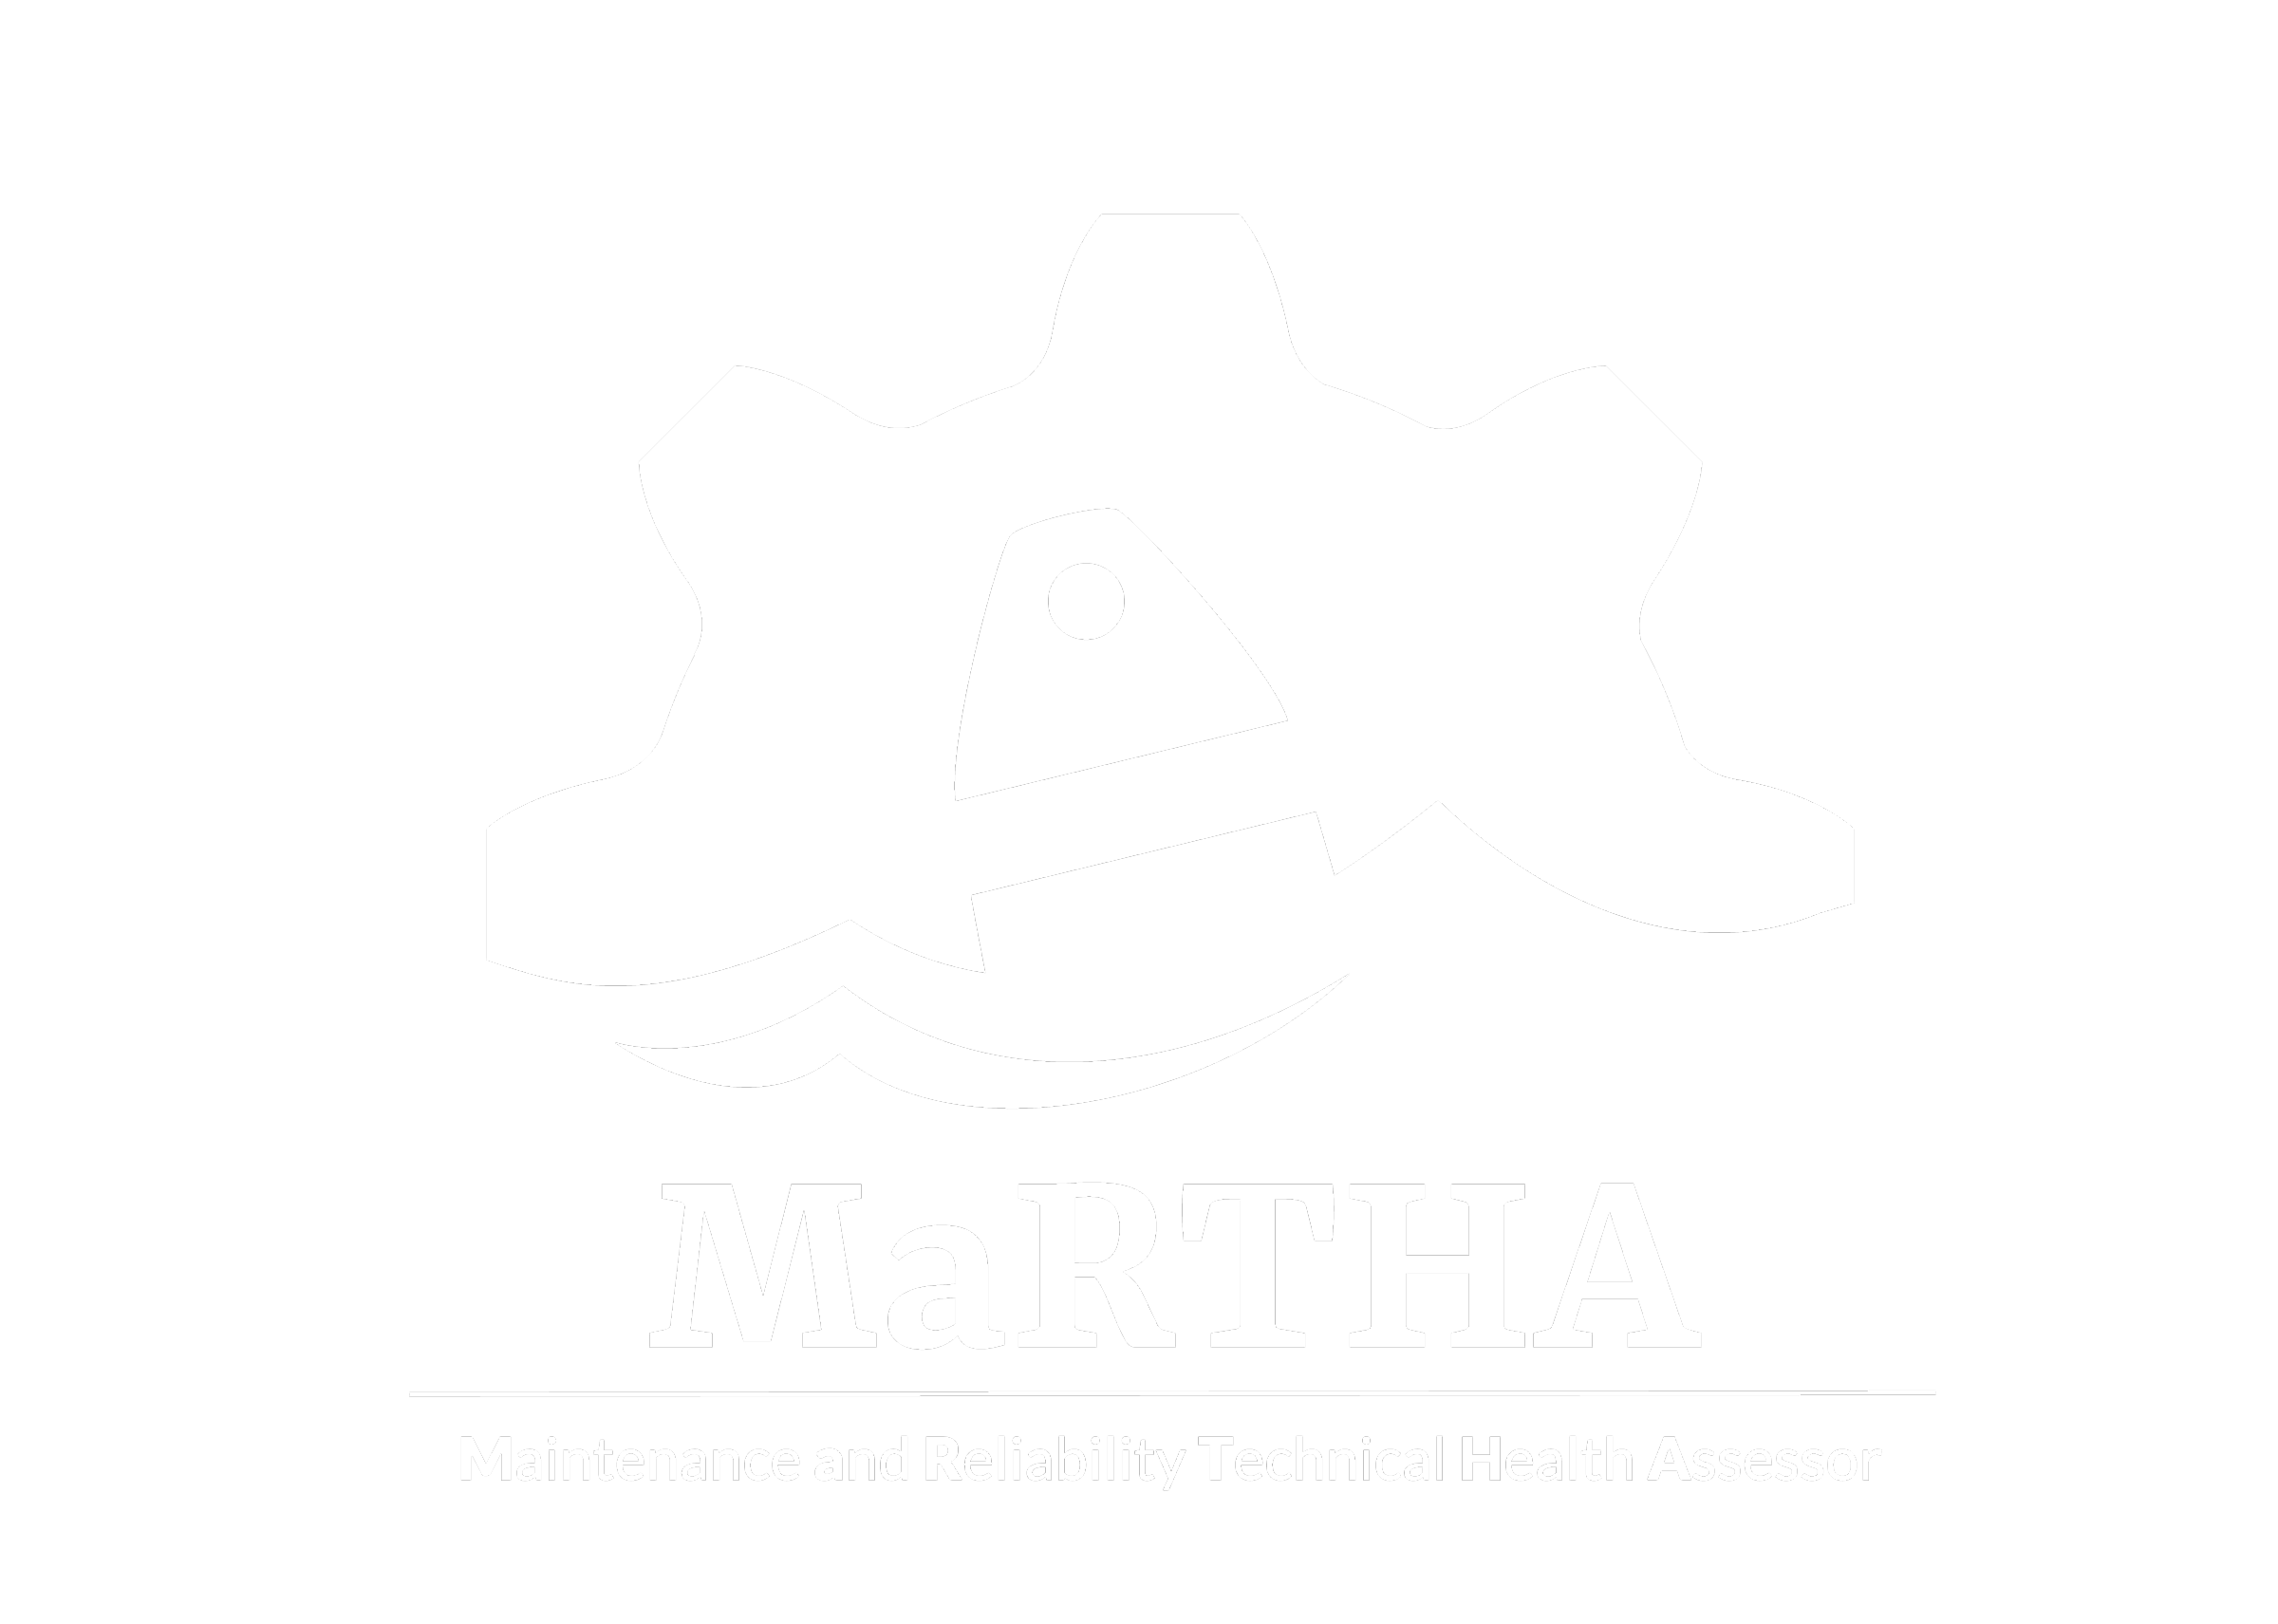 MaRTHA Myers Consulting Services